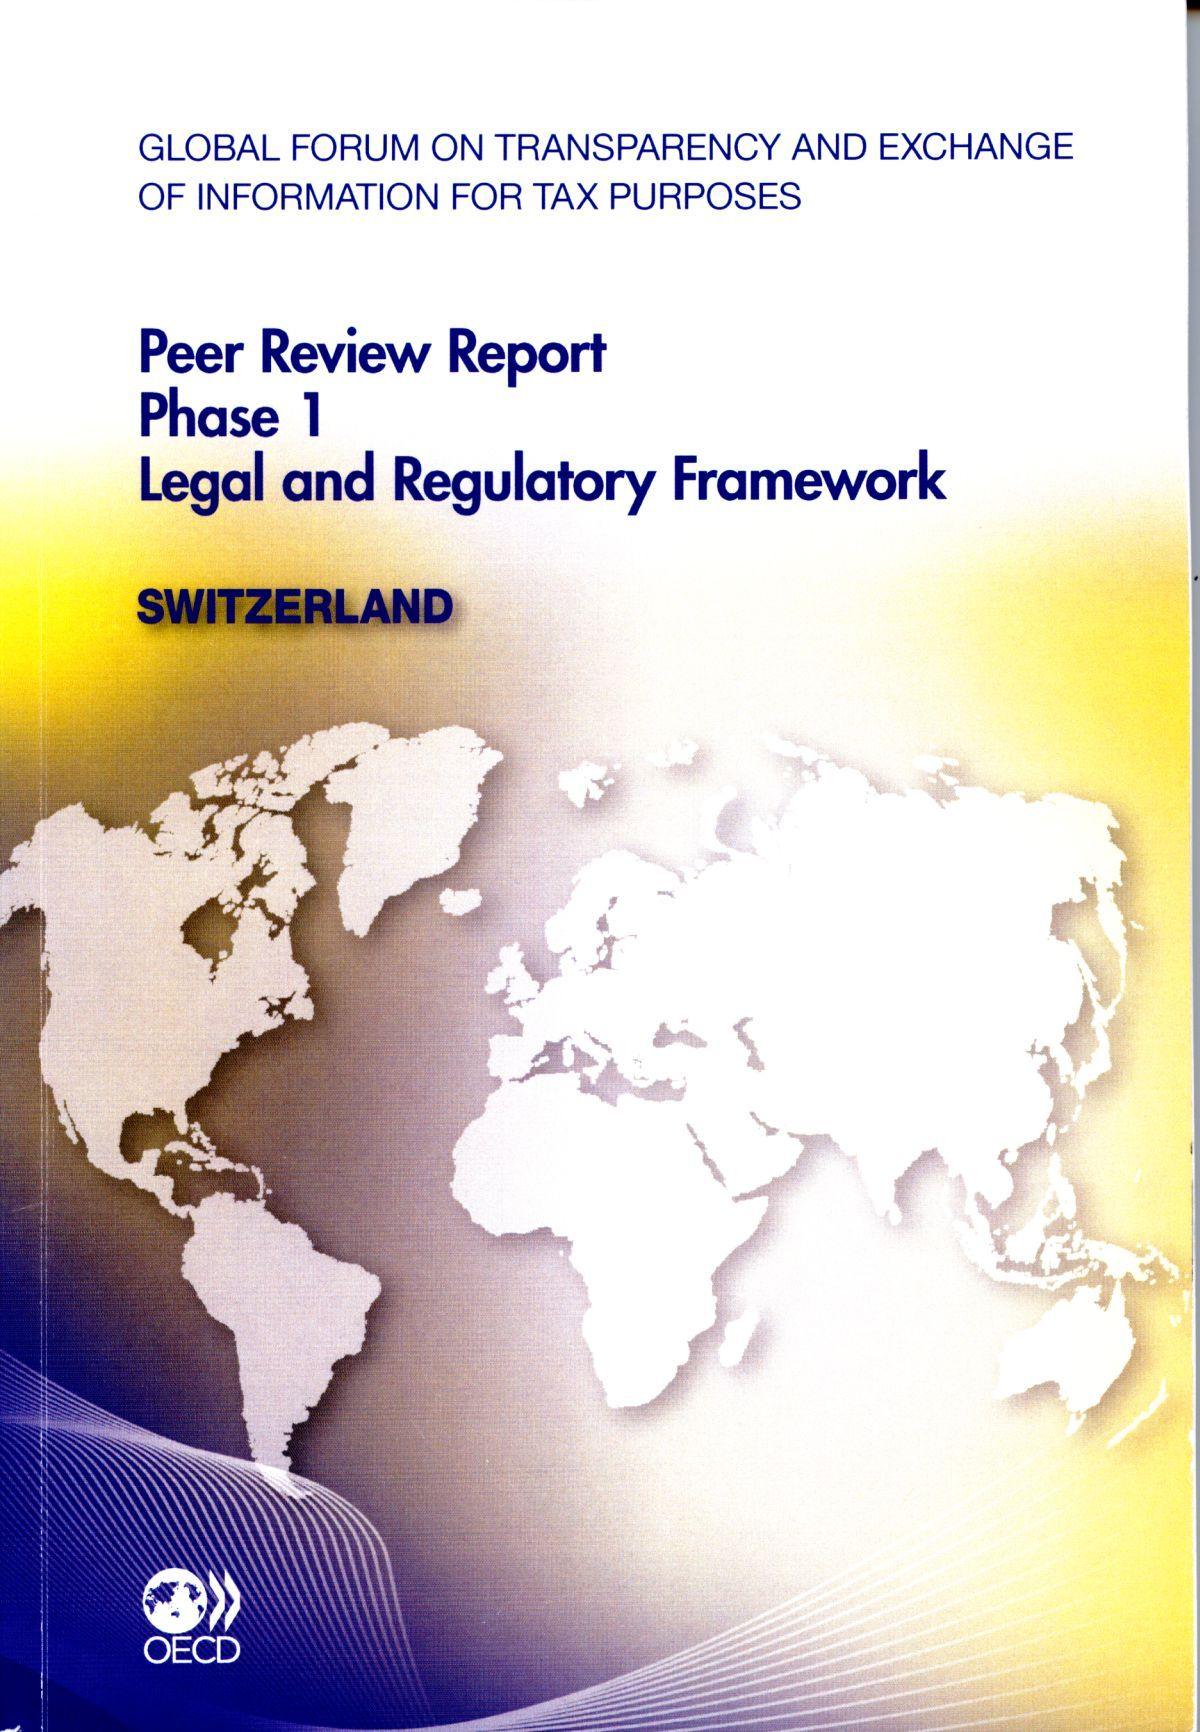 SWITZERLAND - PEER REVIEW REPORT PHASE 1 LEGAL AND REGULATORY FRAMEWORK (ANG)